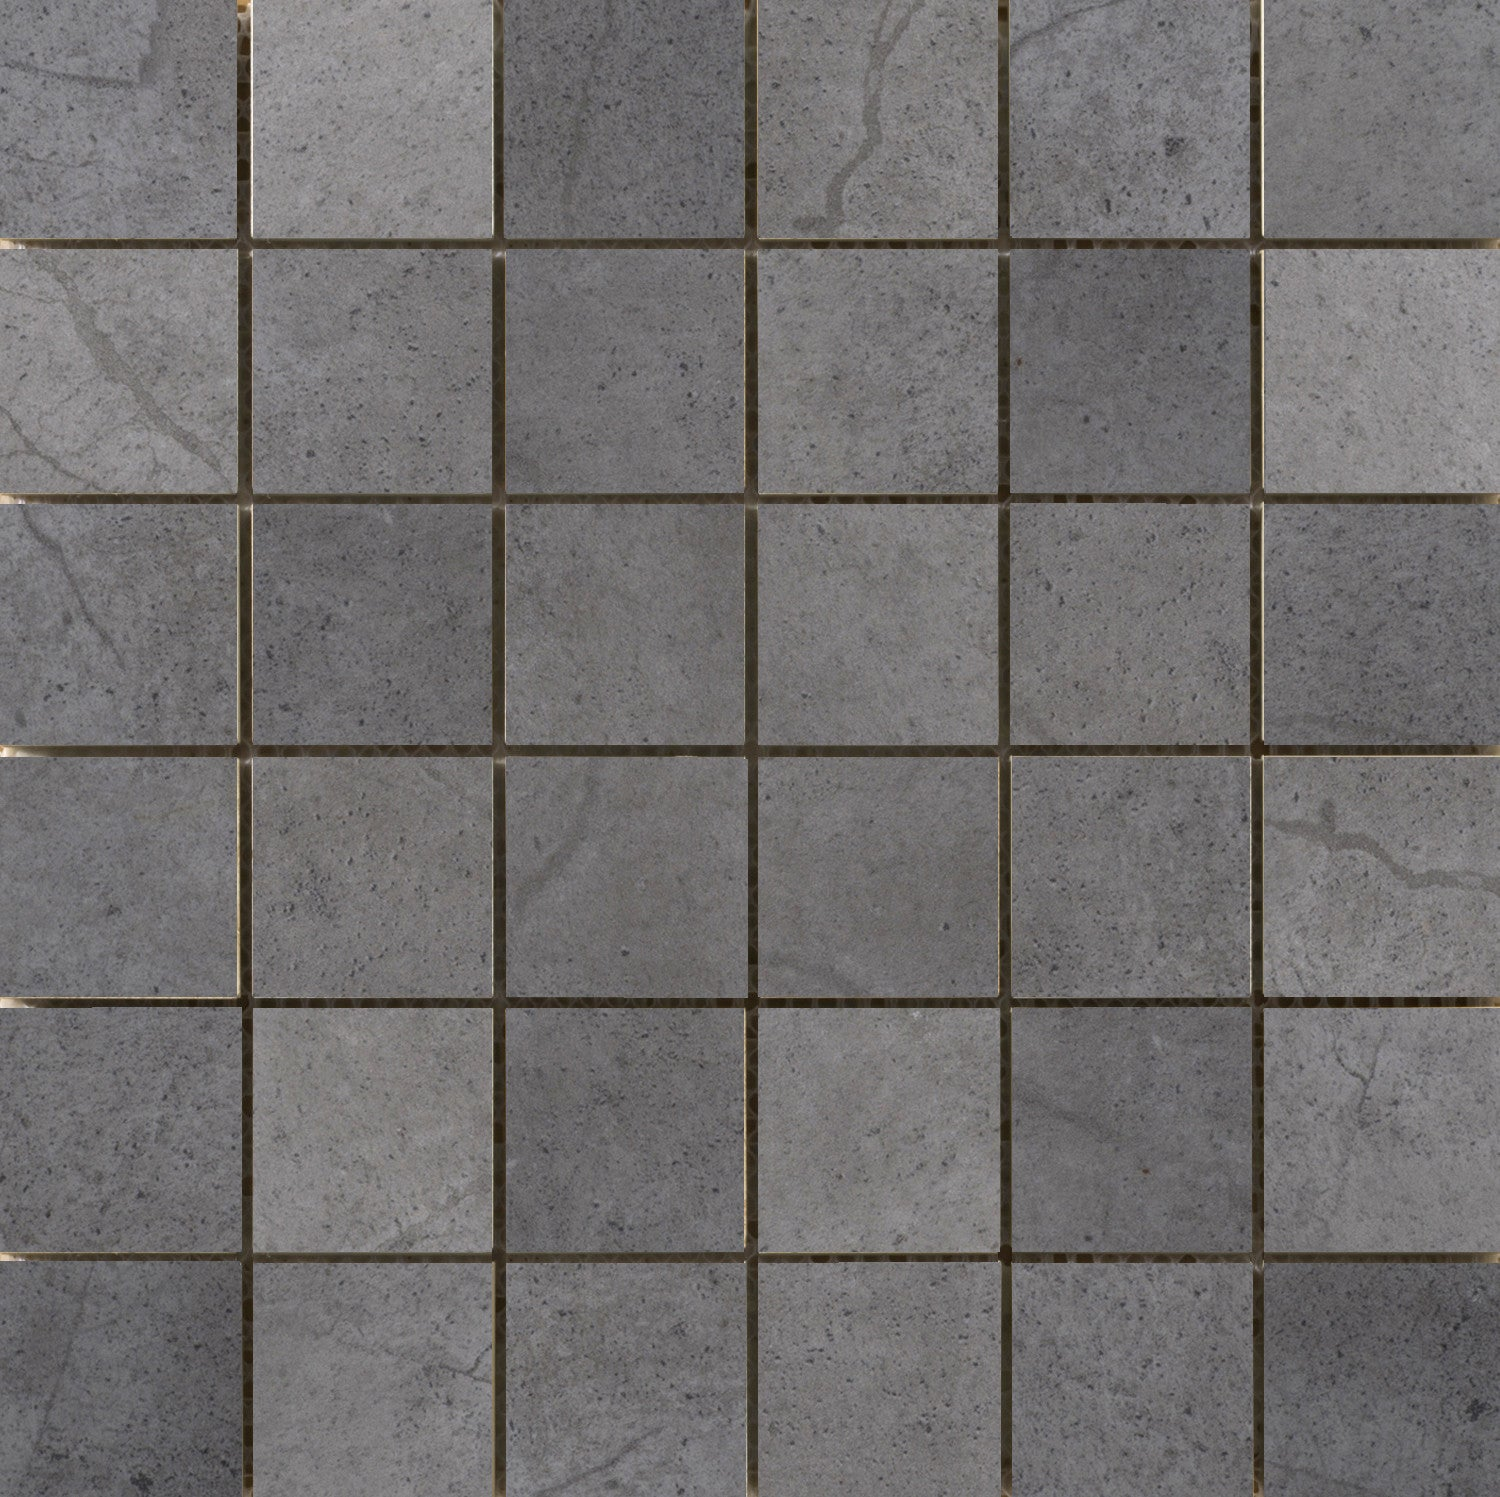 marble tiles textures grey tile gray floor seamless interior texture architecture floors dolomia